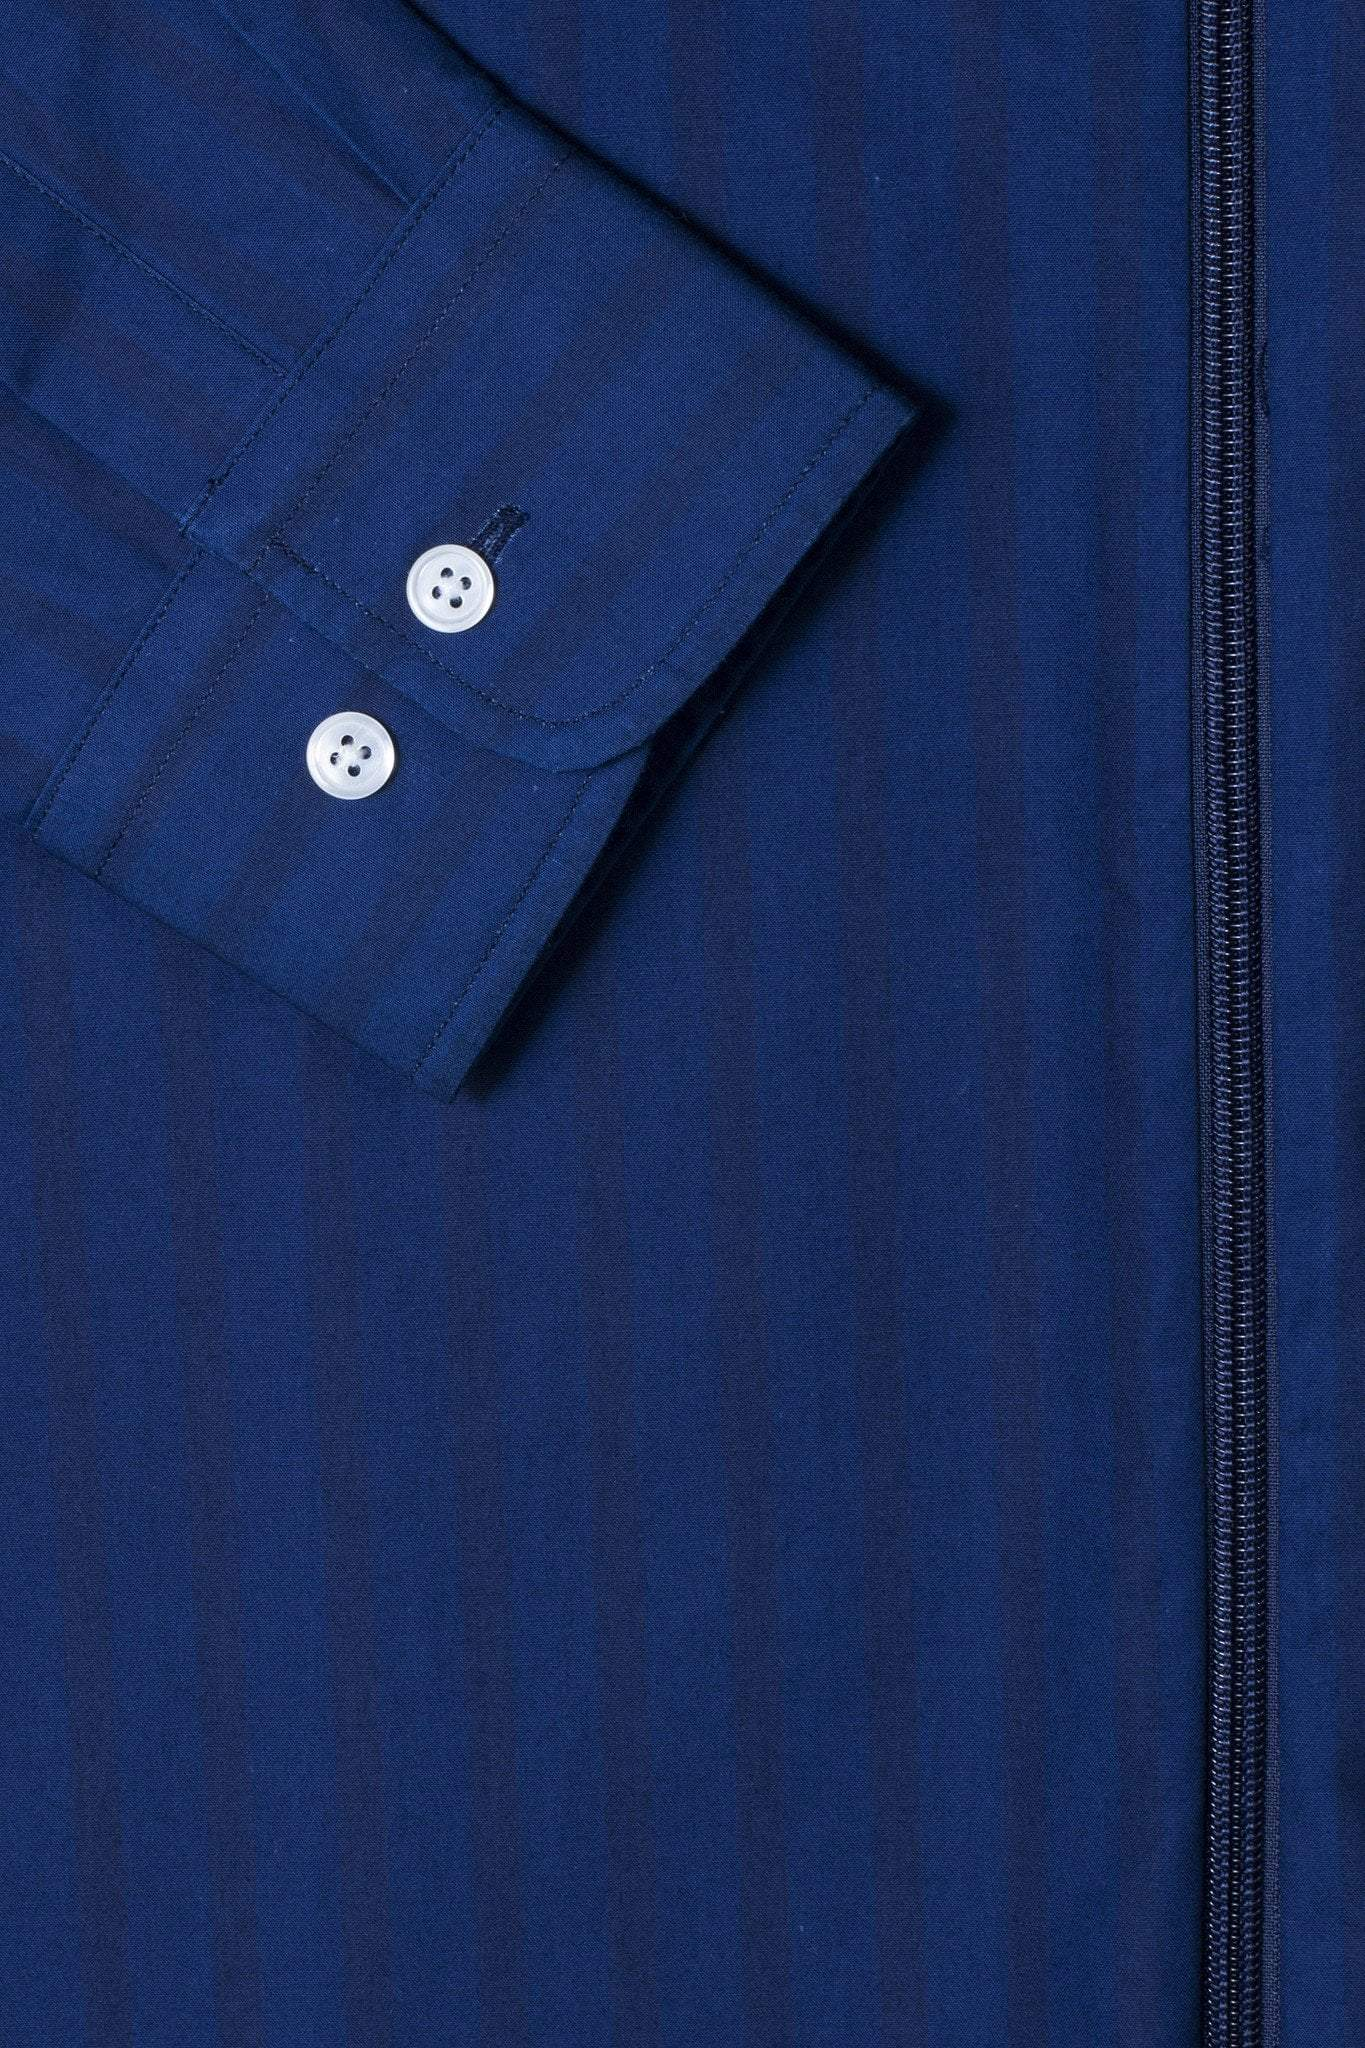 Outershirt Verto - blue lined